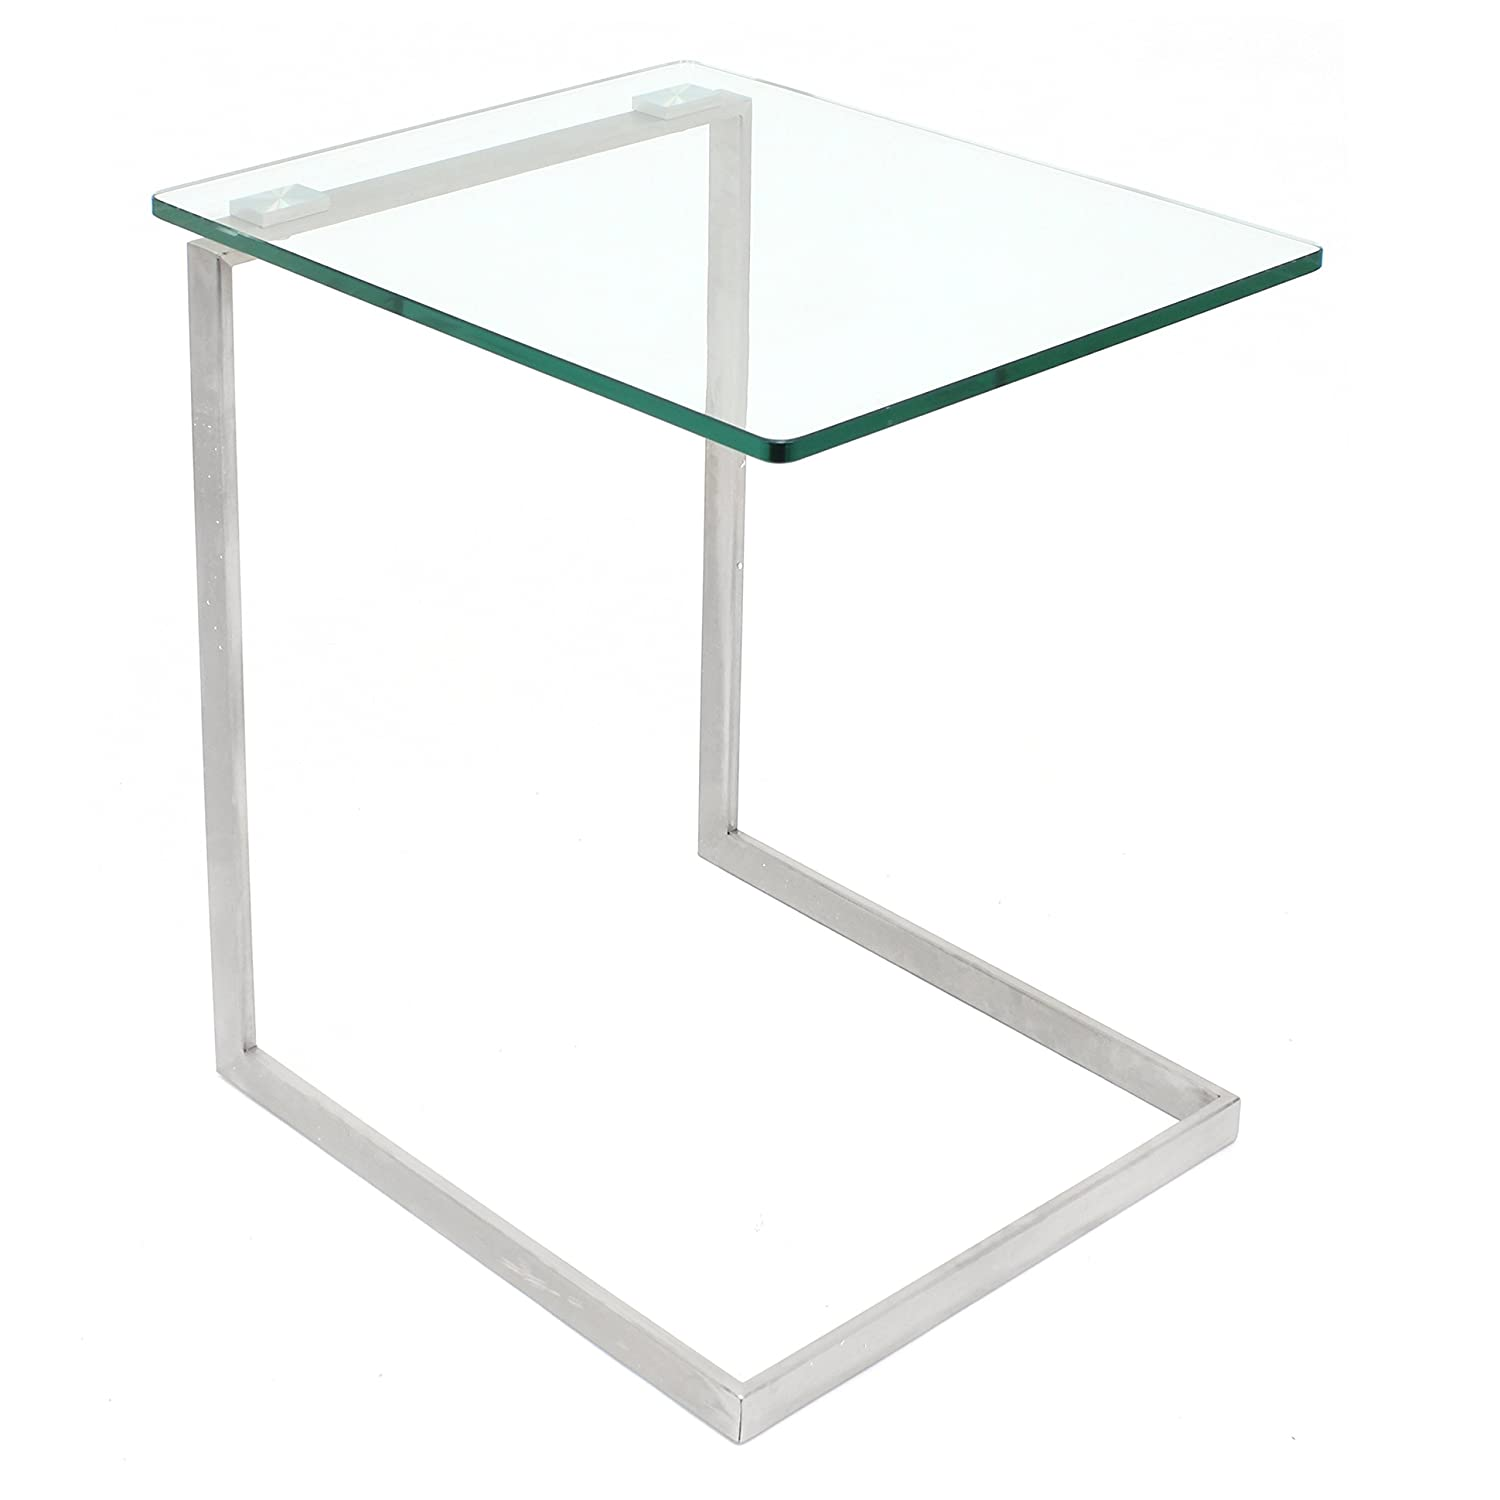 End Table Glass #2 - Amazon.com